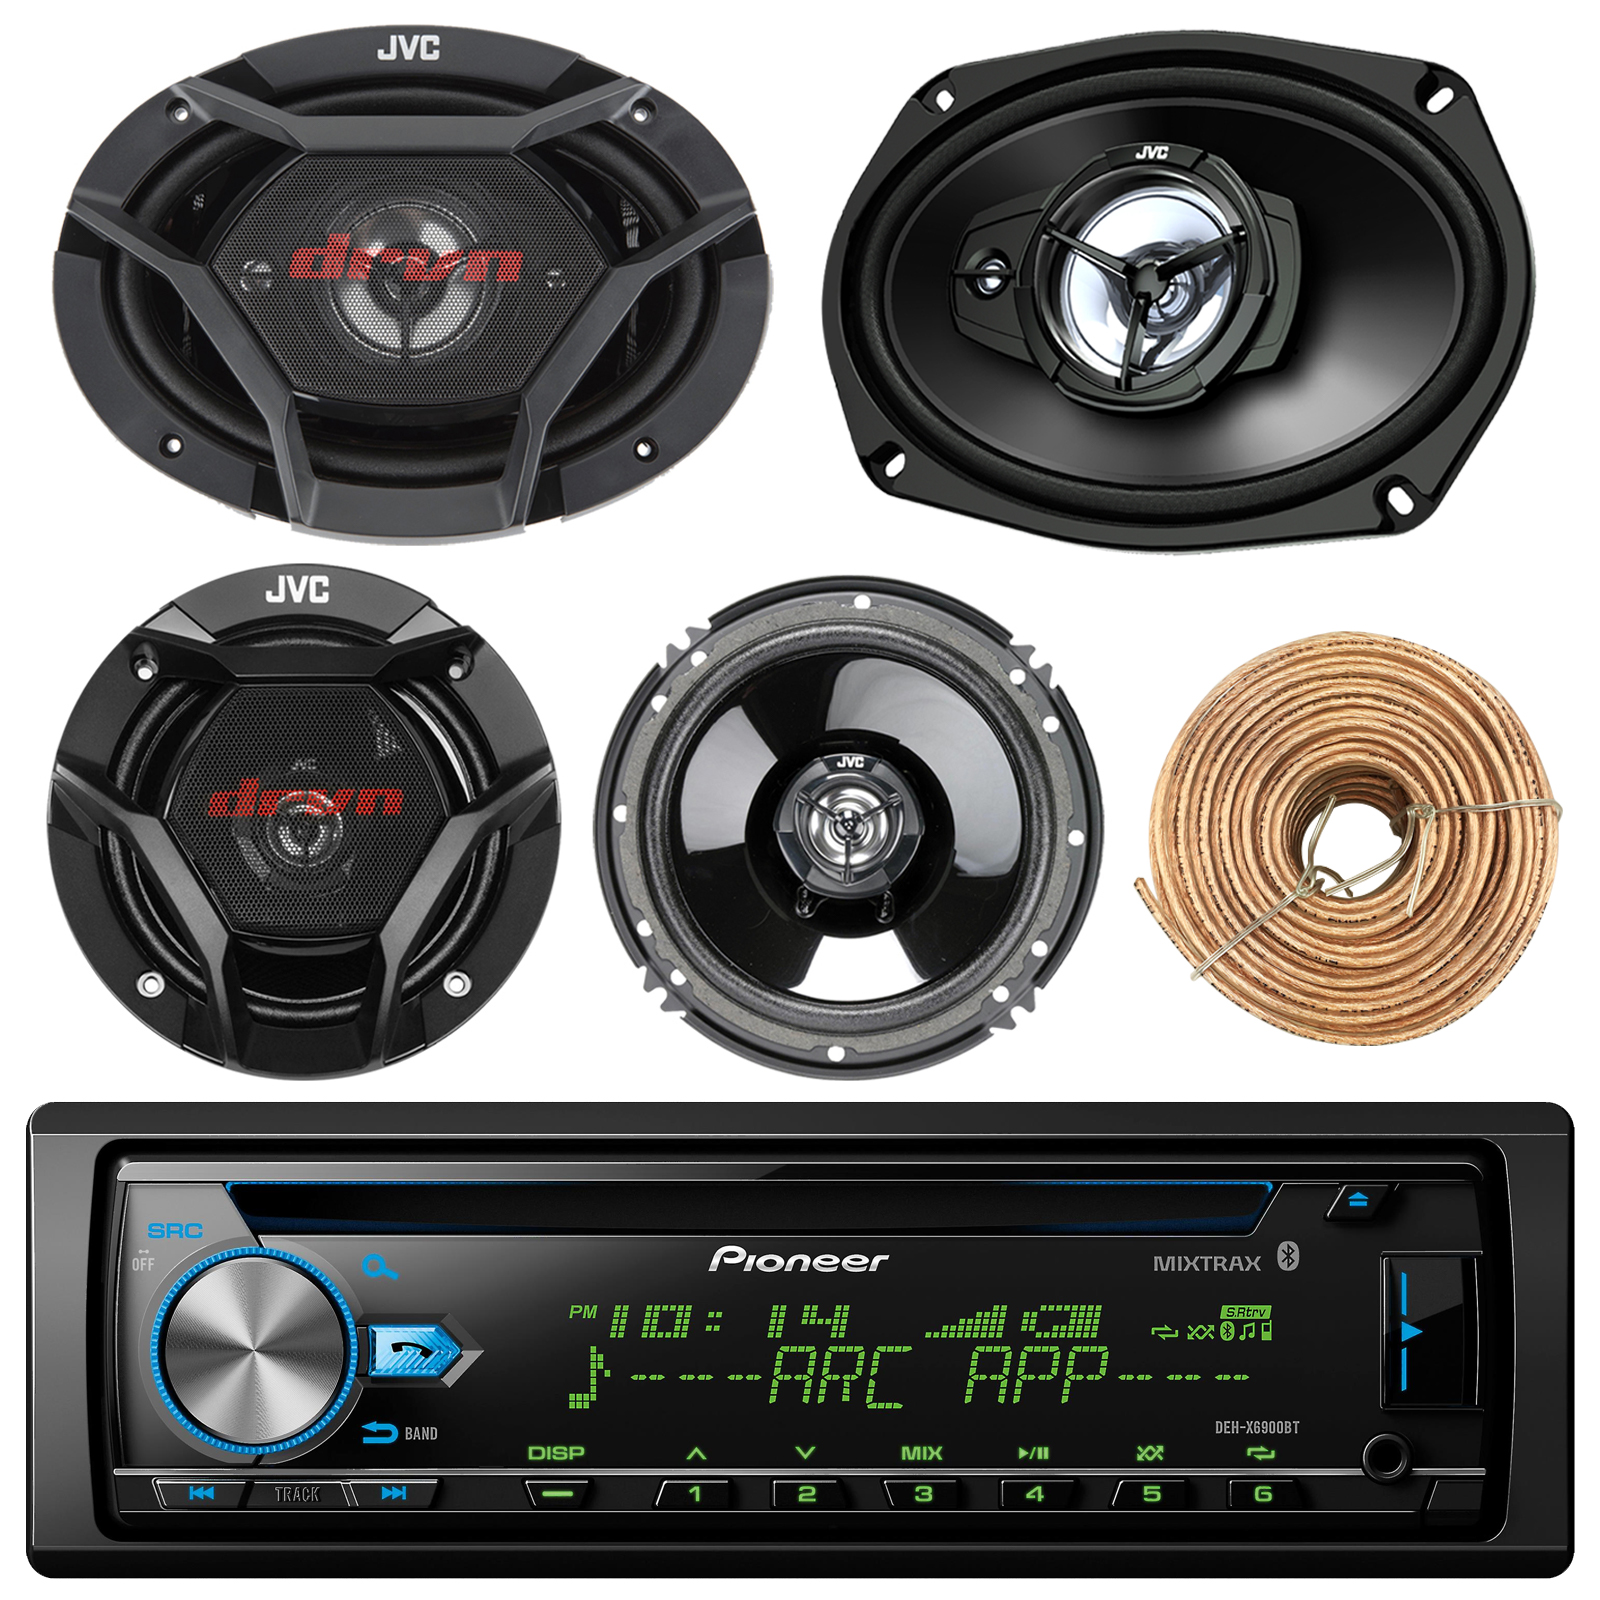 "Pioneer DEH-X6900BT Car CD Player Receiver Bluetooth USB AUX Radio - Bundle Combo With 2x JVC 6x9"" 3-Way Vehicle Coaxial Speakers + 2x 6.5"" Inch 2-Way Audio Speakers + Enrock 50 Ft 18G Speaker Wire"